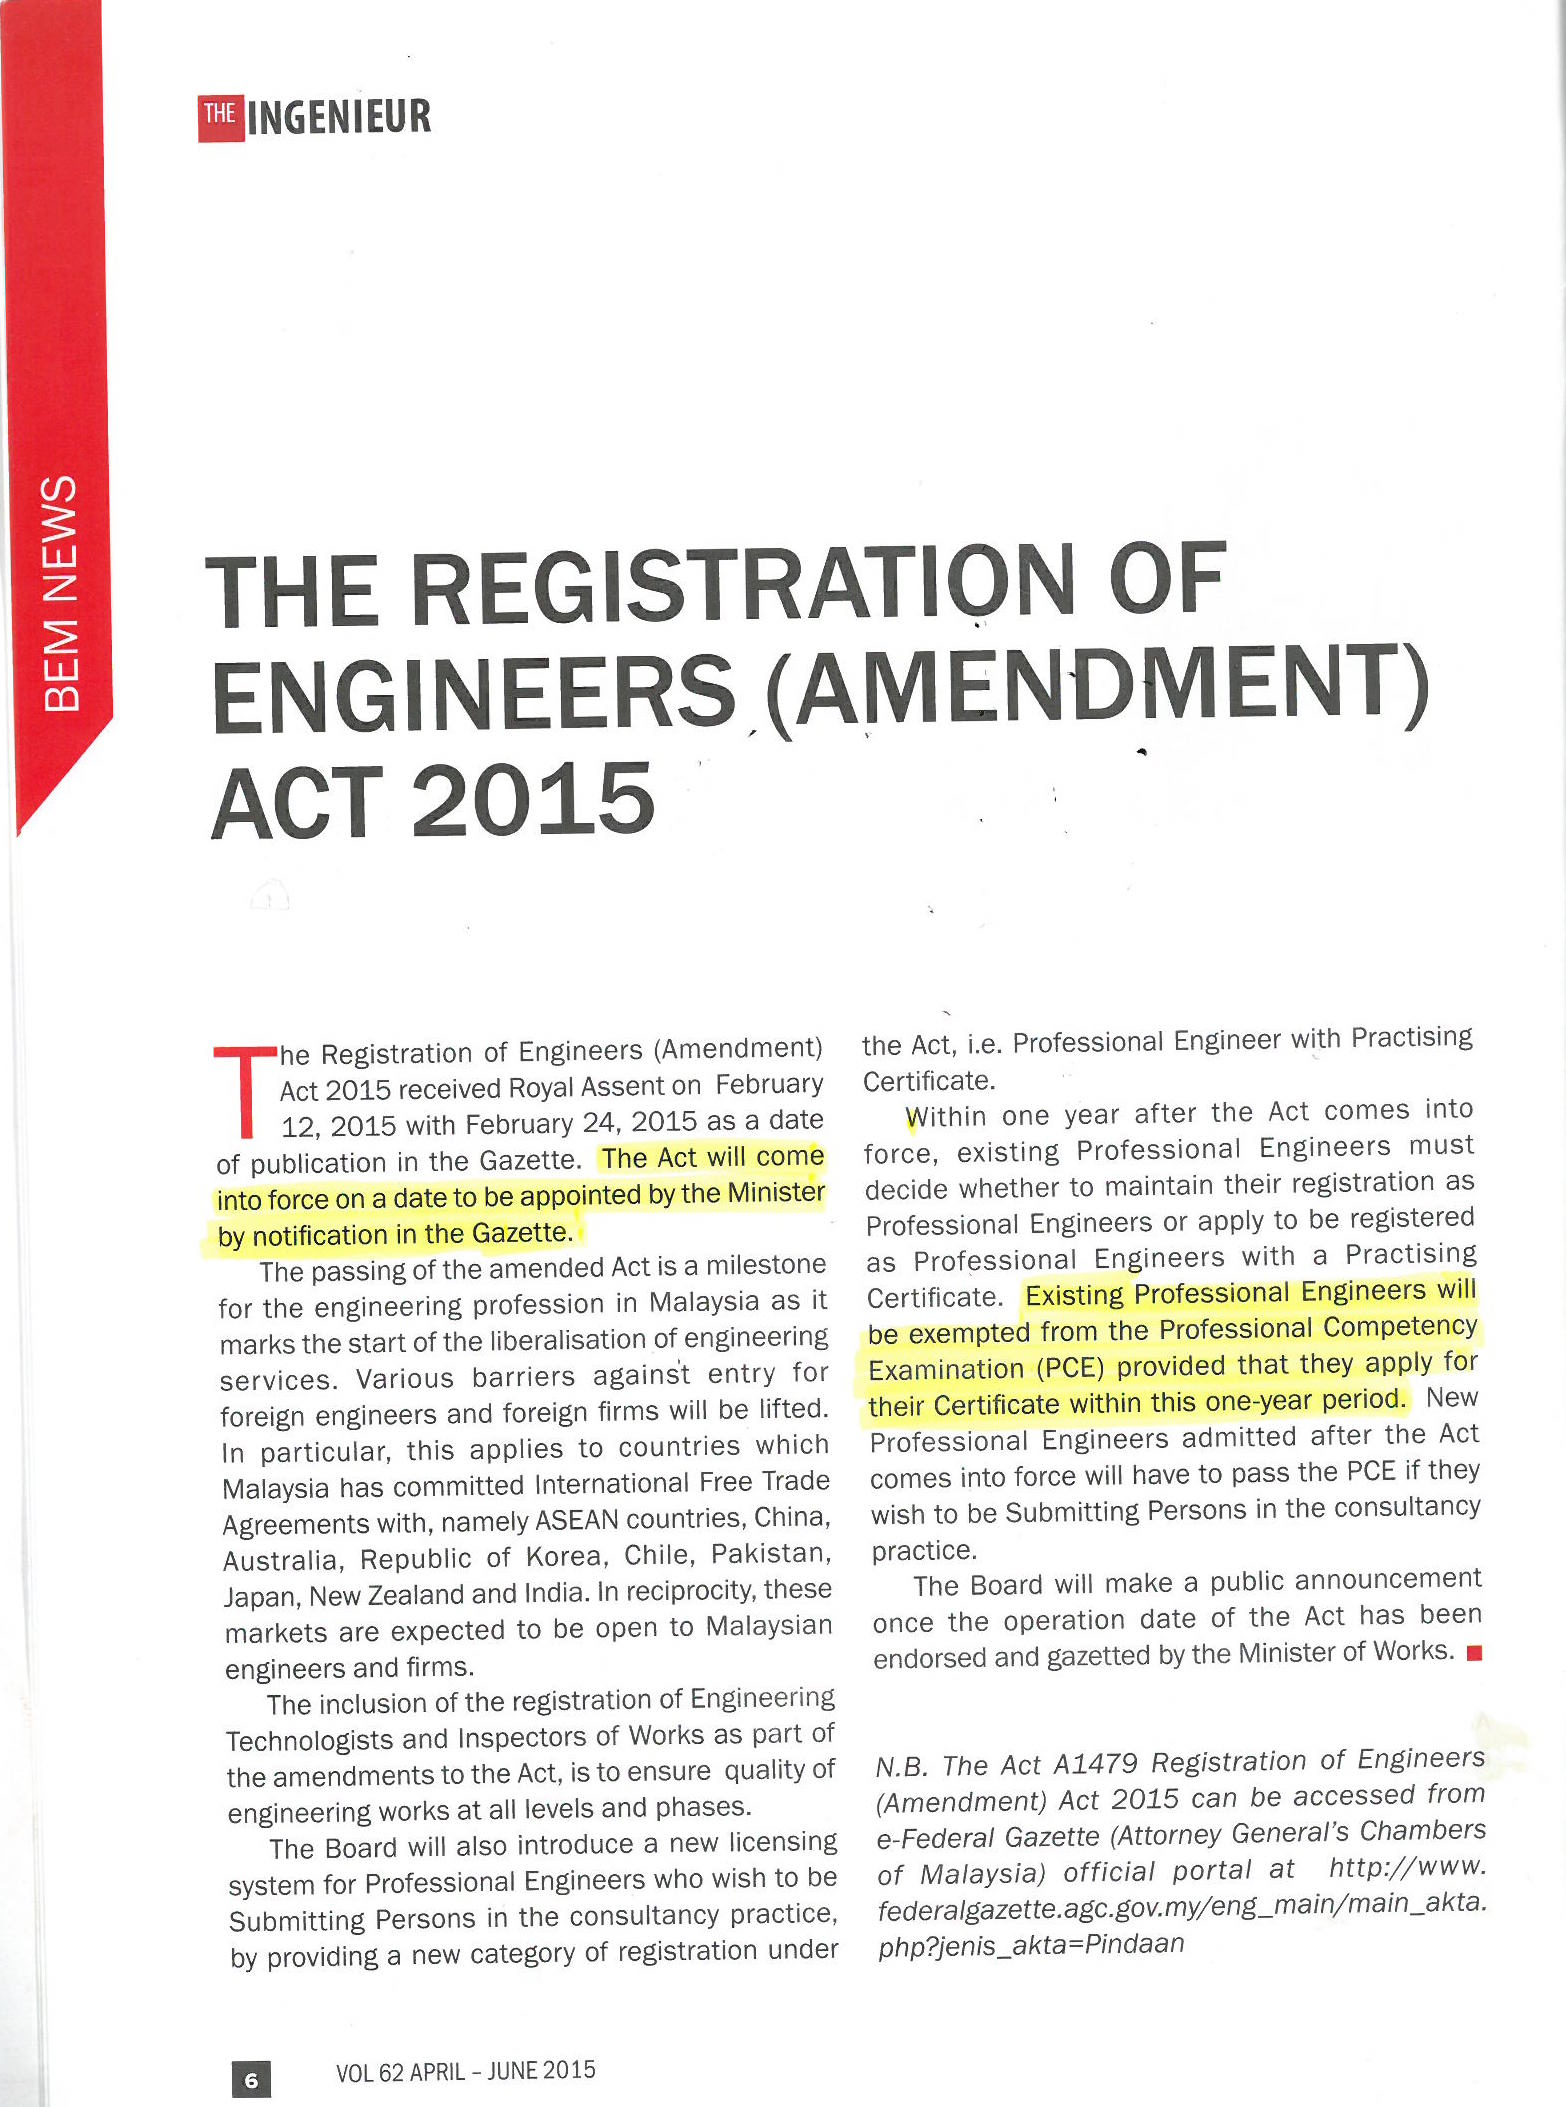 Registration of Engineers Act 2015